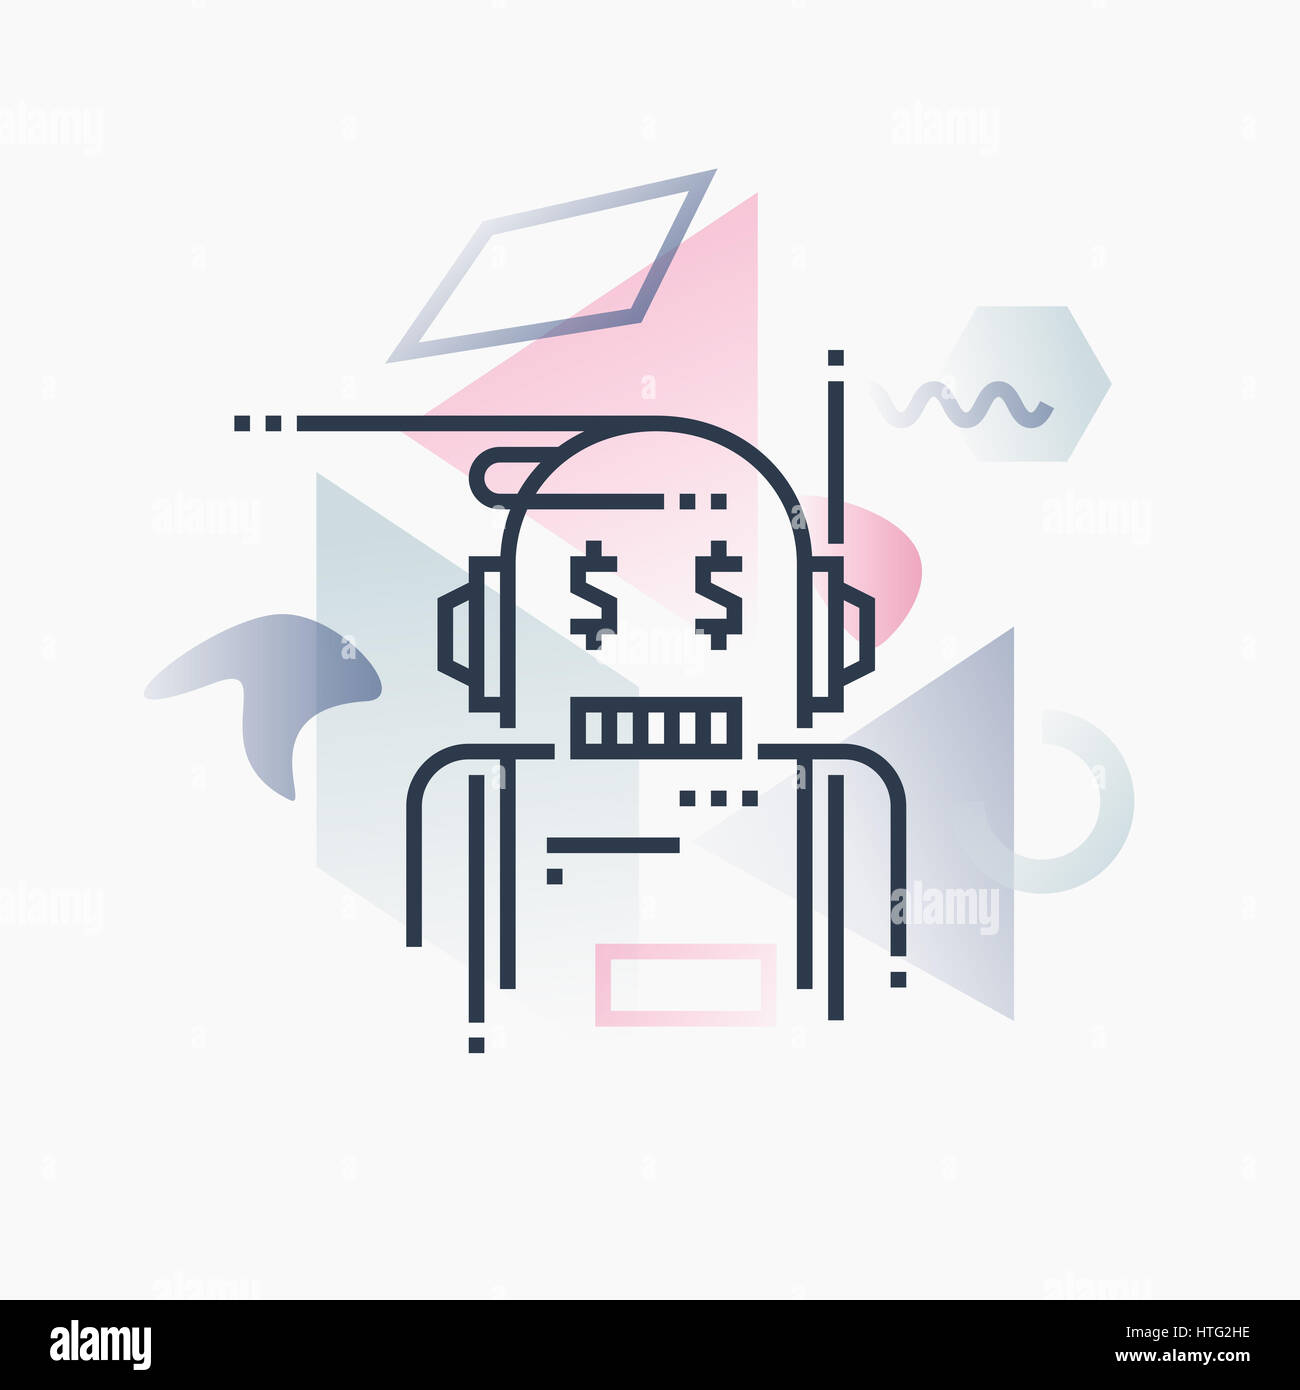 Robo-advisor, financial service artificial intelligence. Abstract illustration concept. Stock Photo